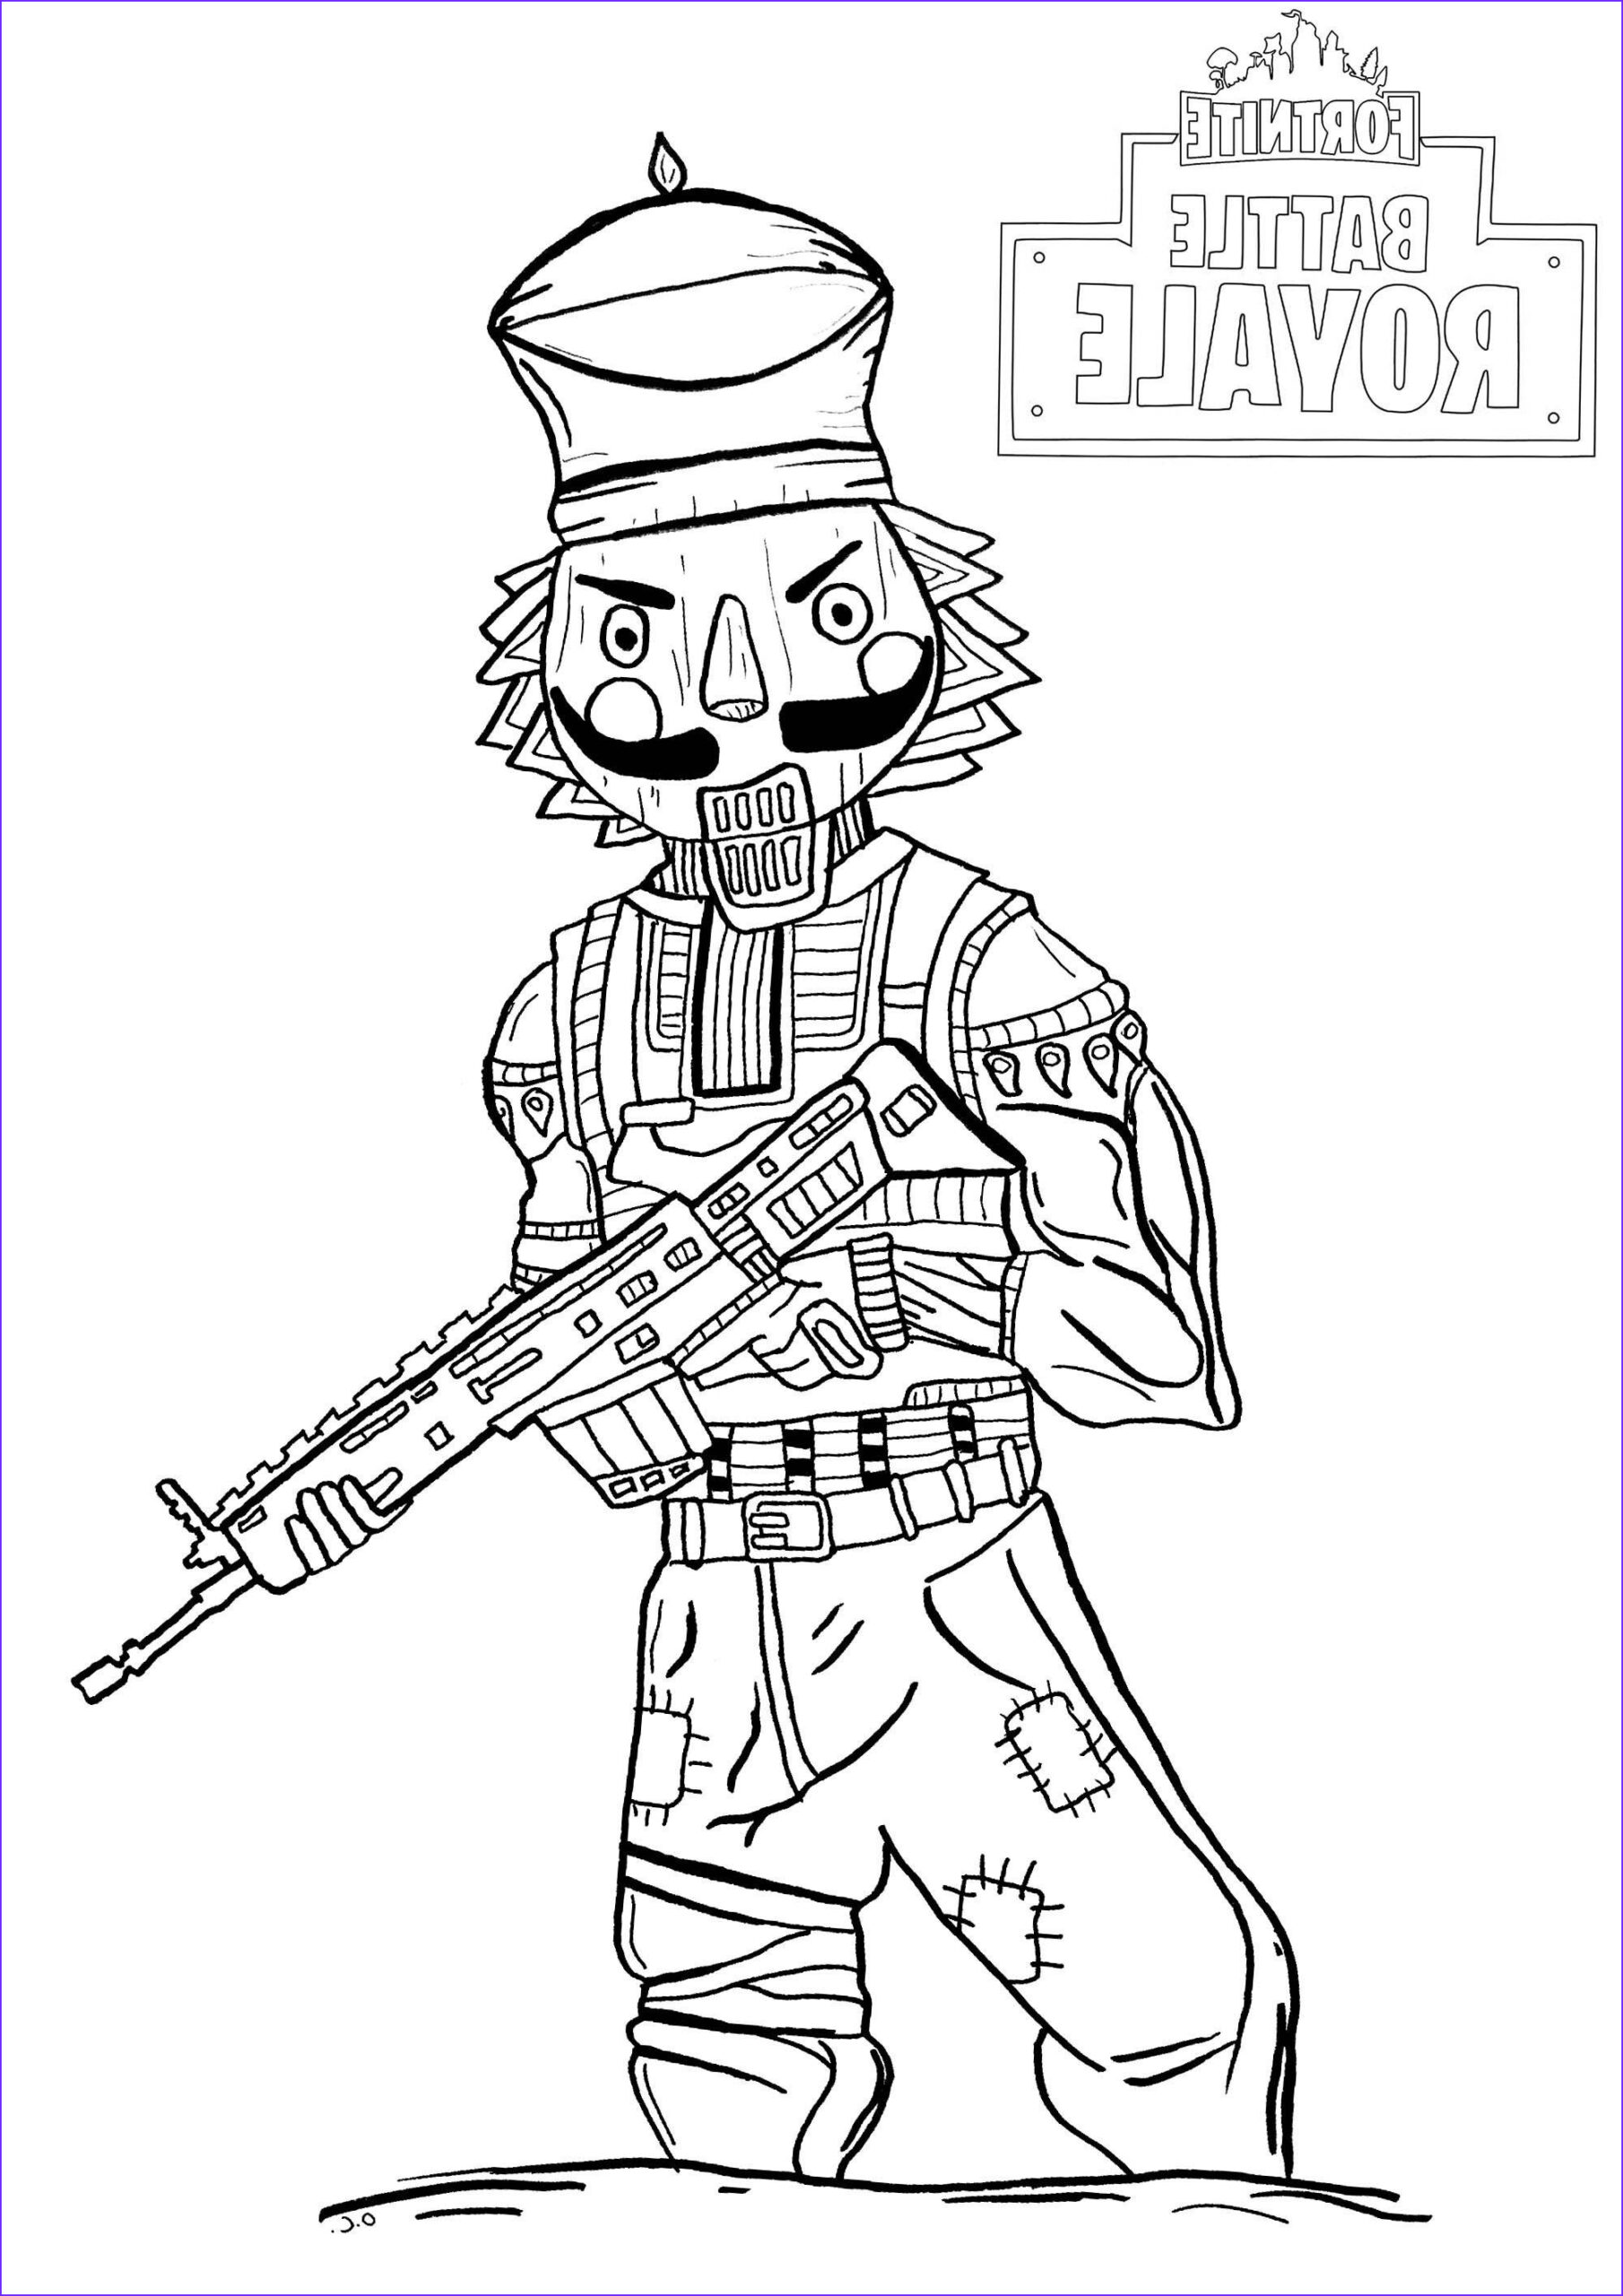 Dark Coloring Pages Elegant Gallery 25 fortnite Coloring Pages Dark Voyager In 2019